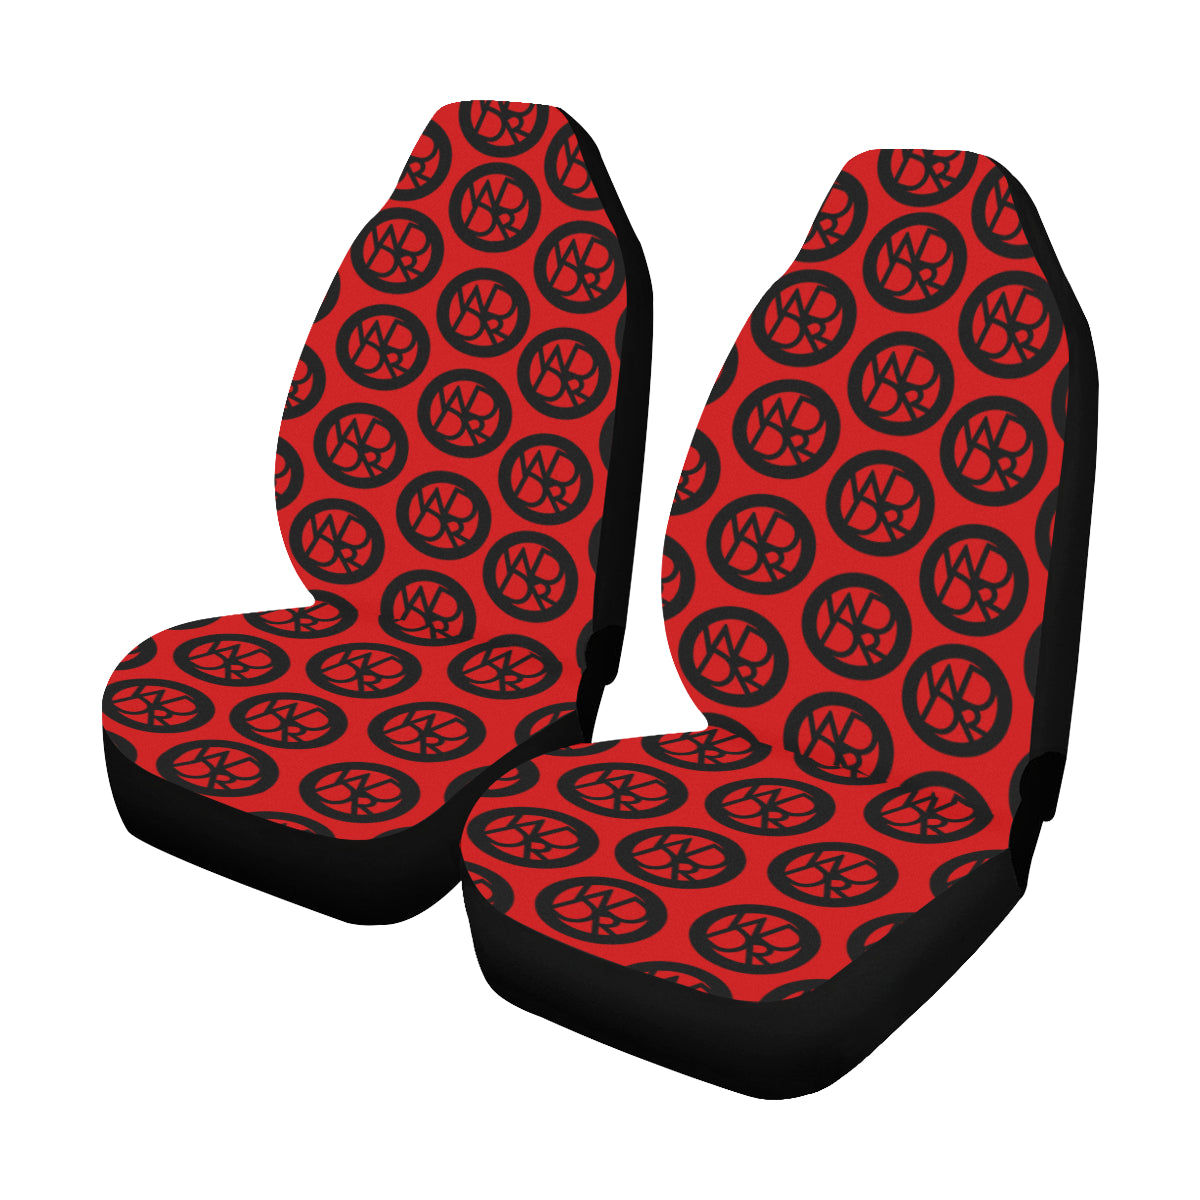 WddR Blk/Red Car Seat Covers (Set of 2)